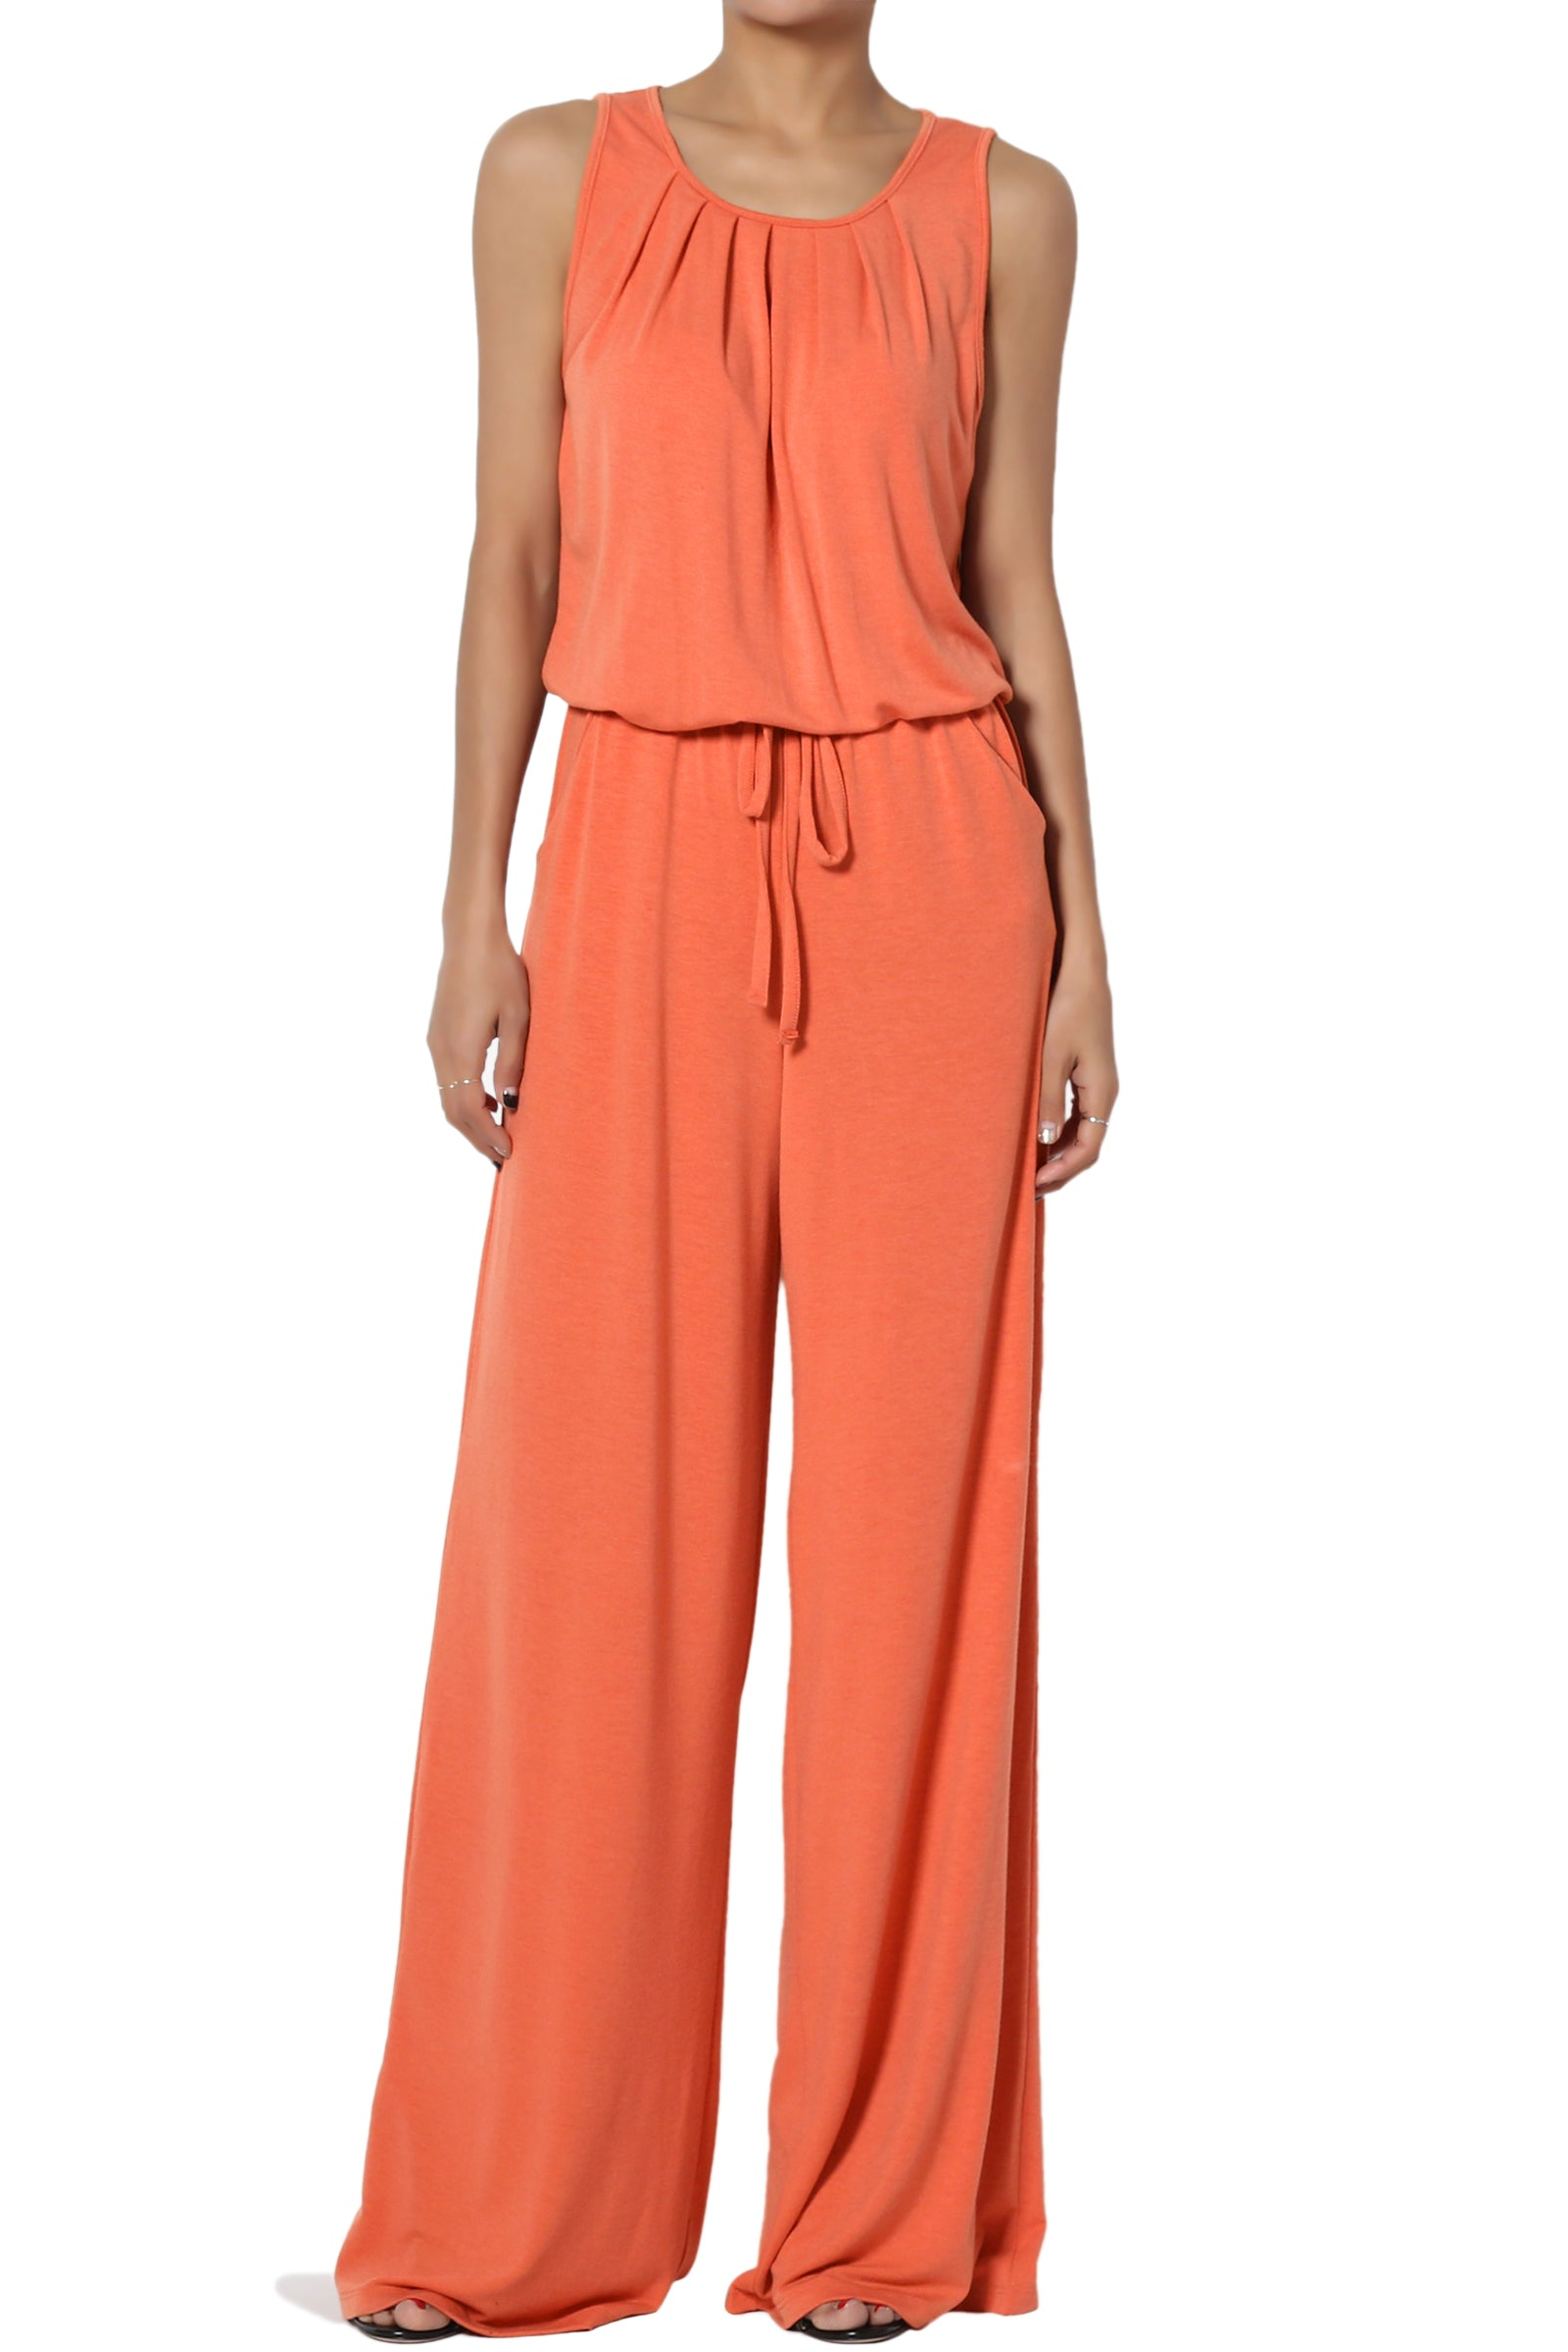 Wide Leg Pants Jumpsuit - FLJ CORPORATIONS